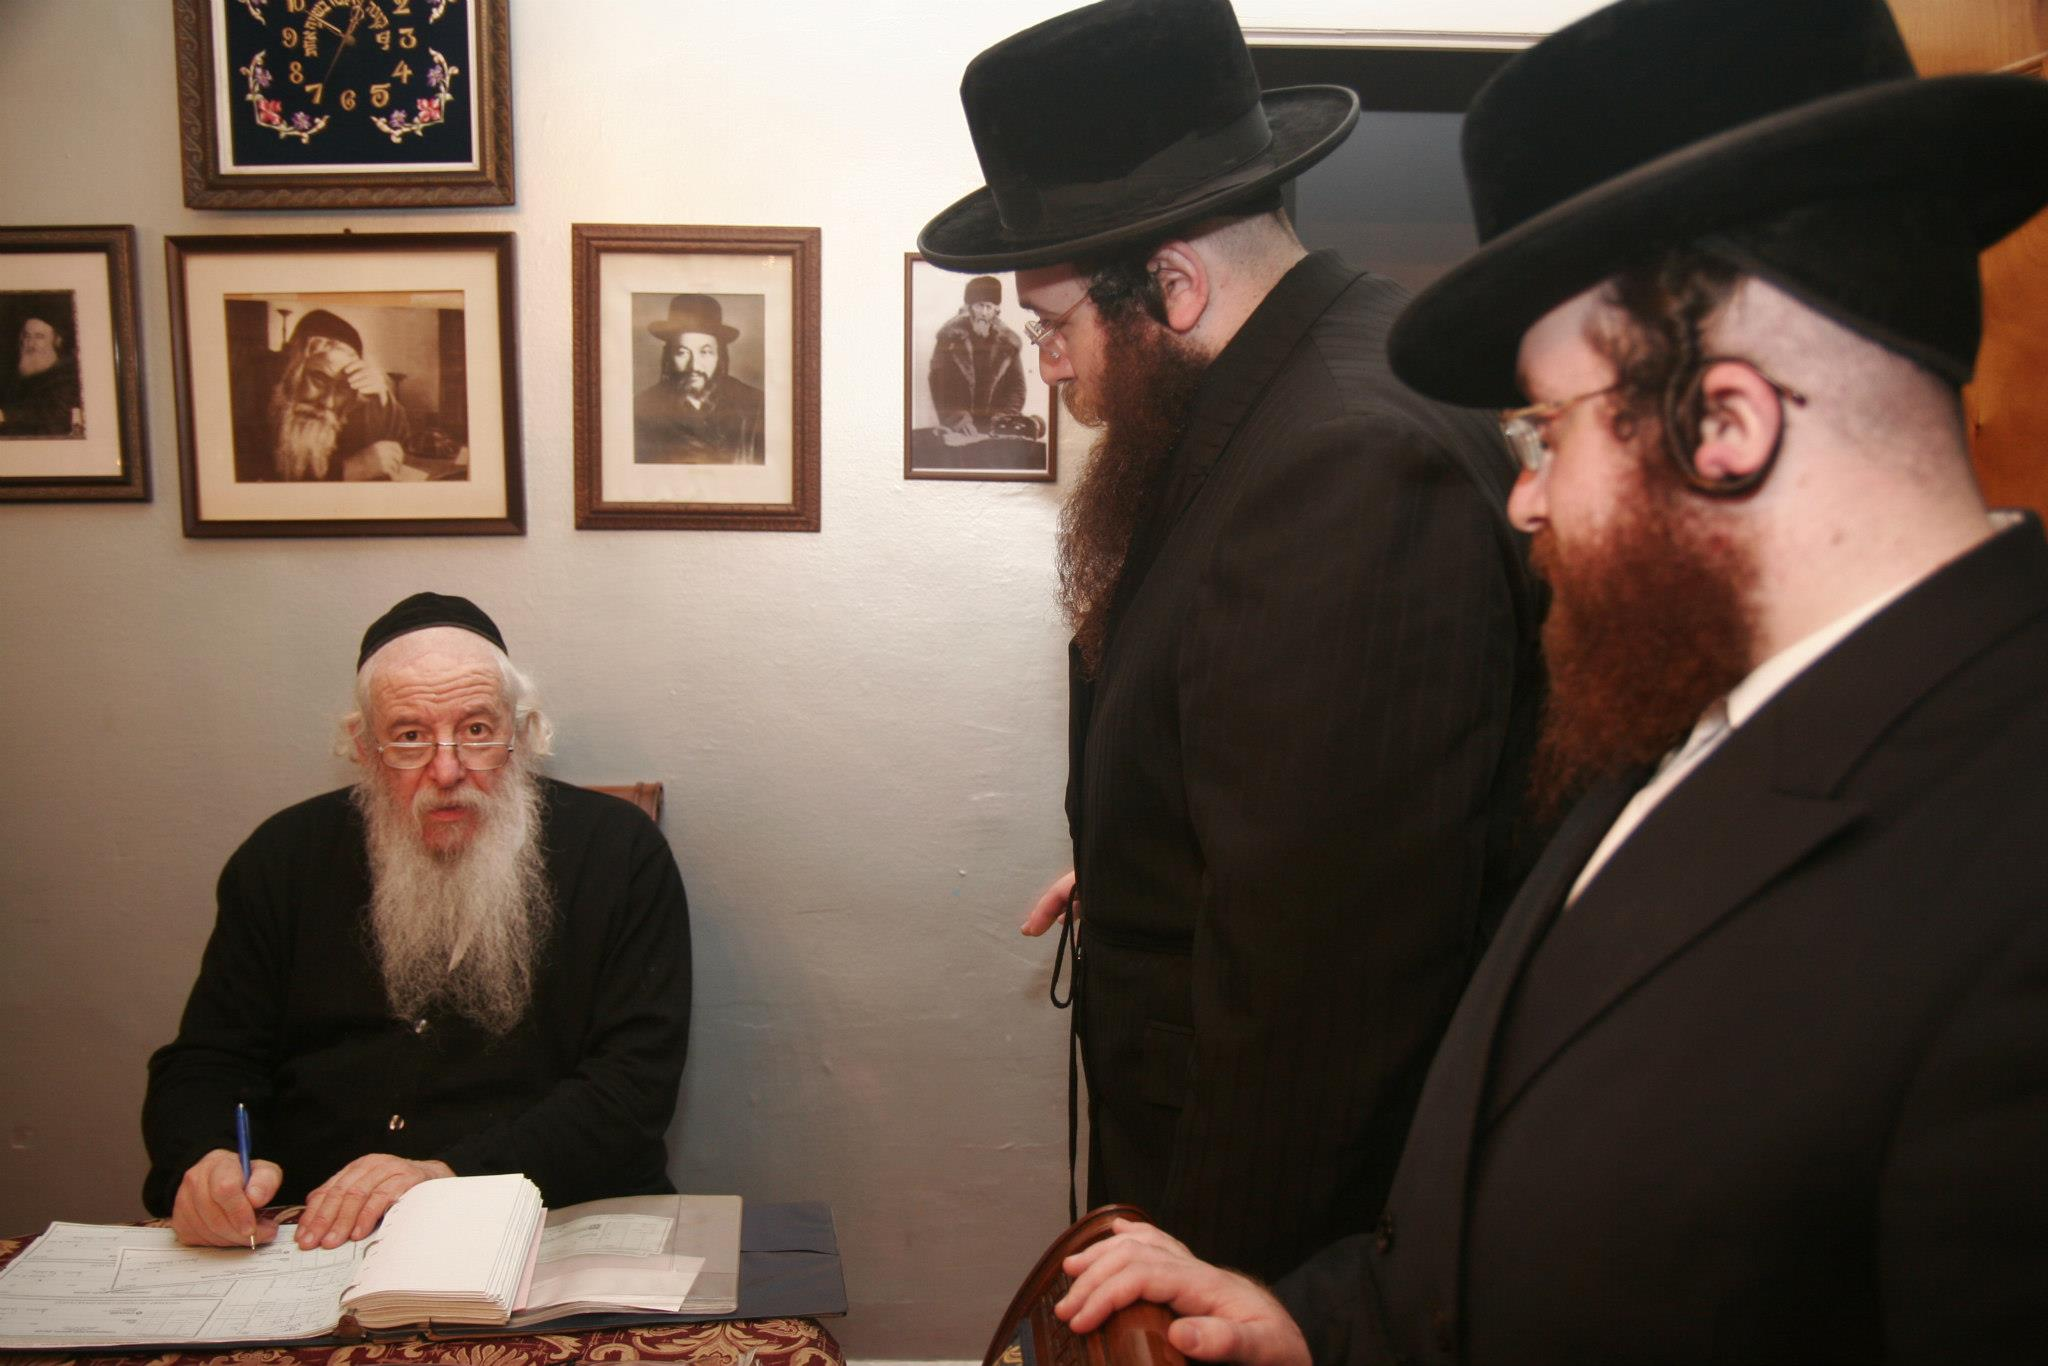 Masbia_Supporter__Novominsker_Rebbe__Rabbi_Yaakov_Perlow_Donating_to_Masbia_before_Yom_Kippur.jpg